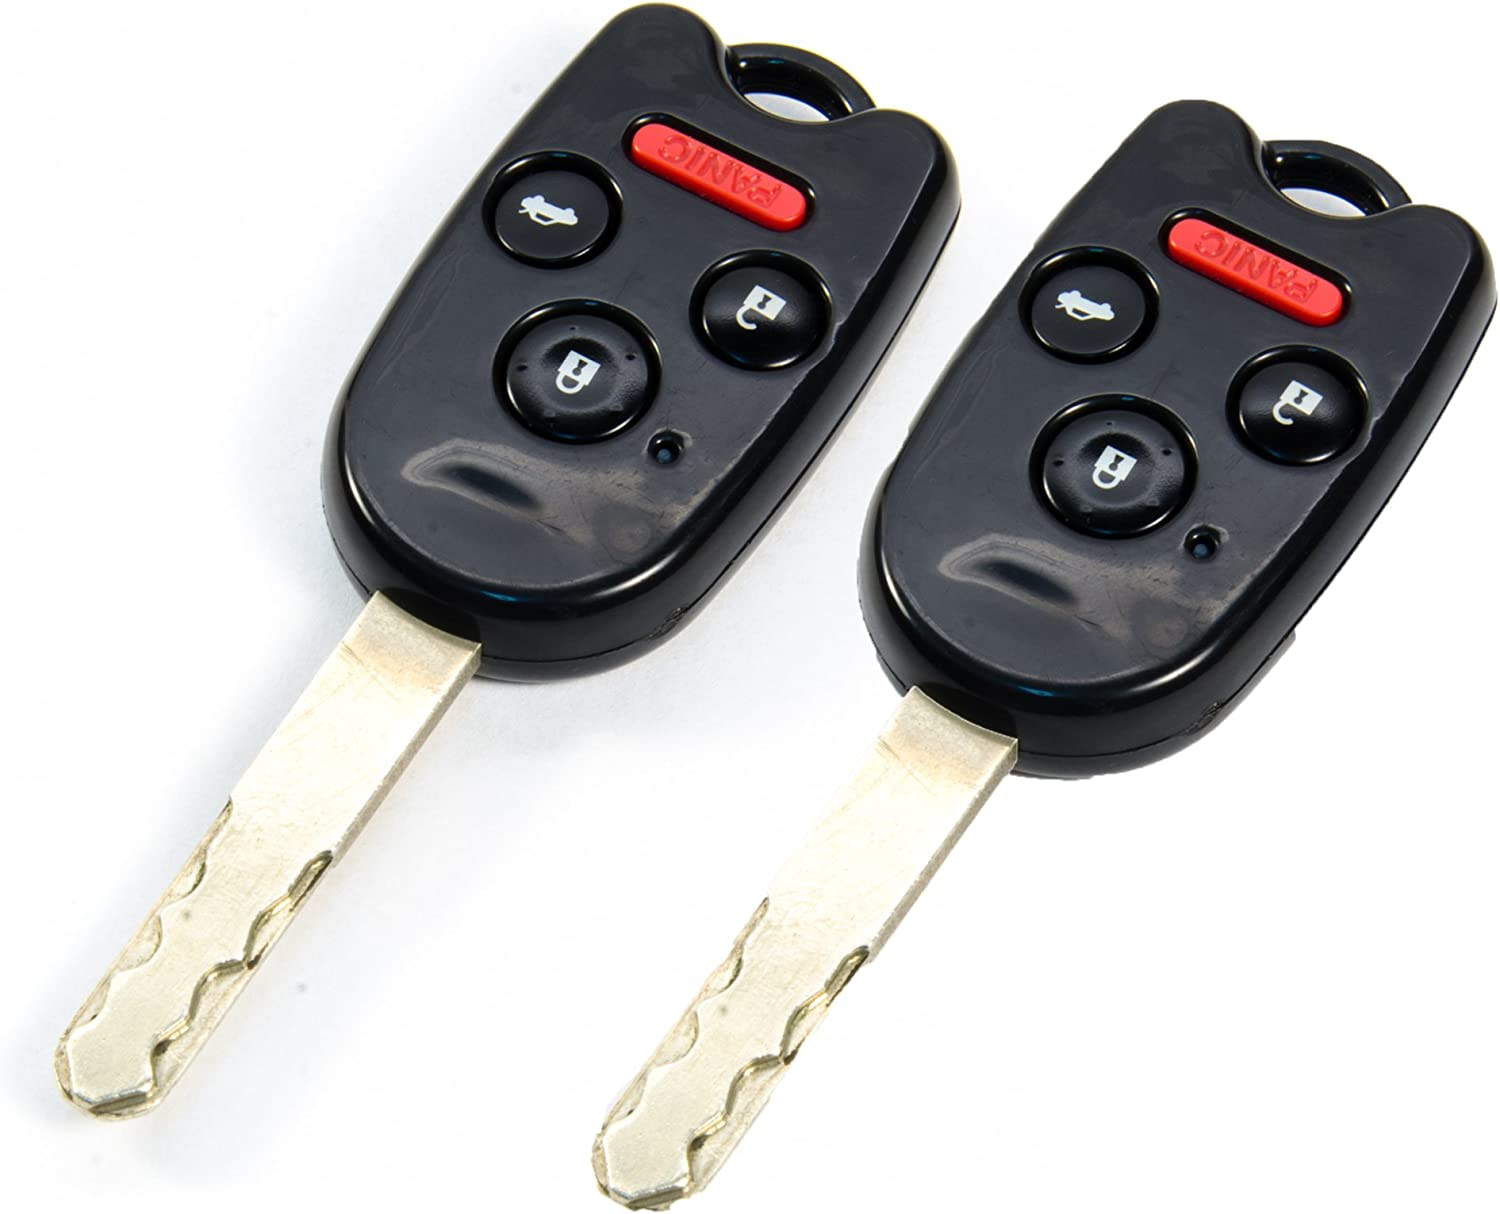 Amazon Com Stauber Best Honda Key Shell Replacement For Accord Ridgeline Civic And Cr V Kr55wk49308 N5f A05taa N5f S0084a No Locksmith Required Using Your Old Key And Chip 2 Pack Black Automotive